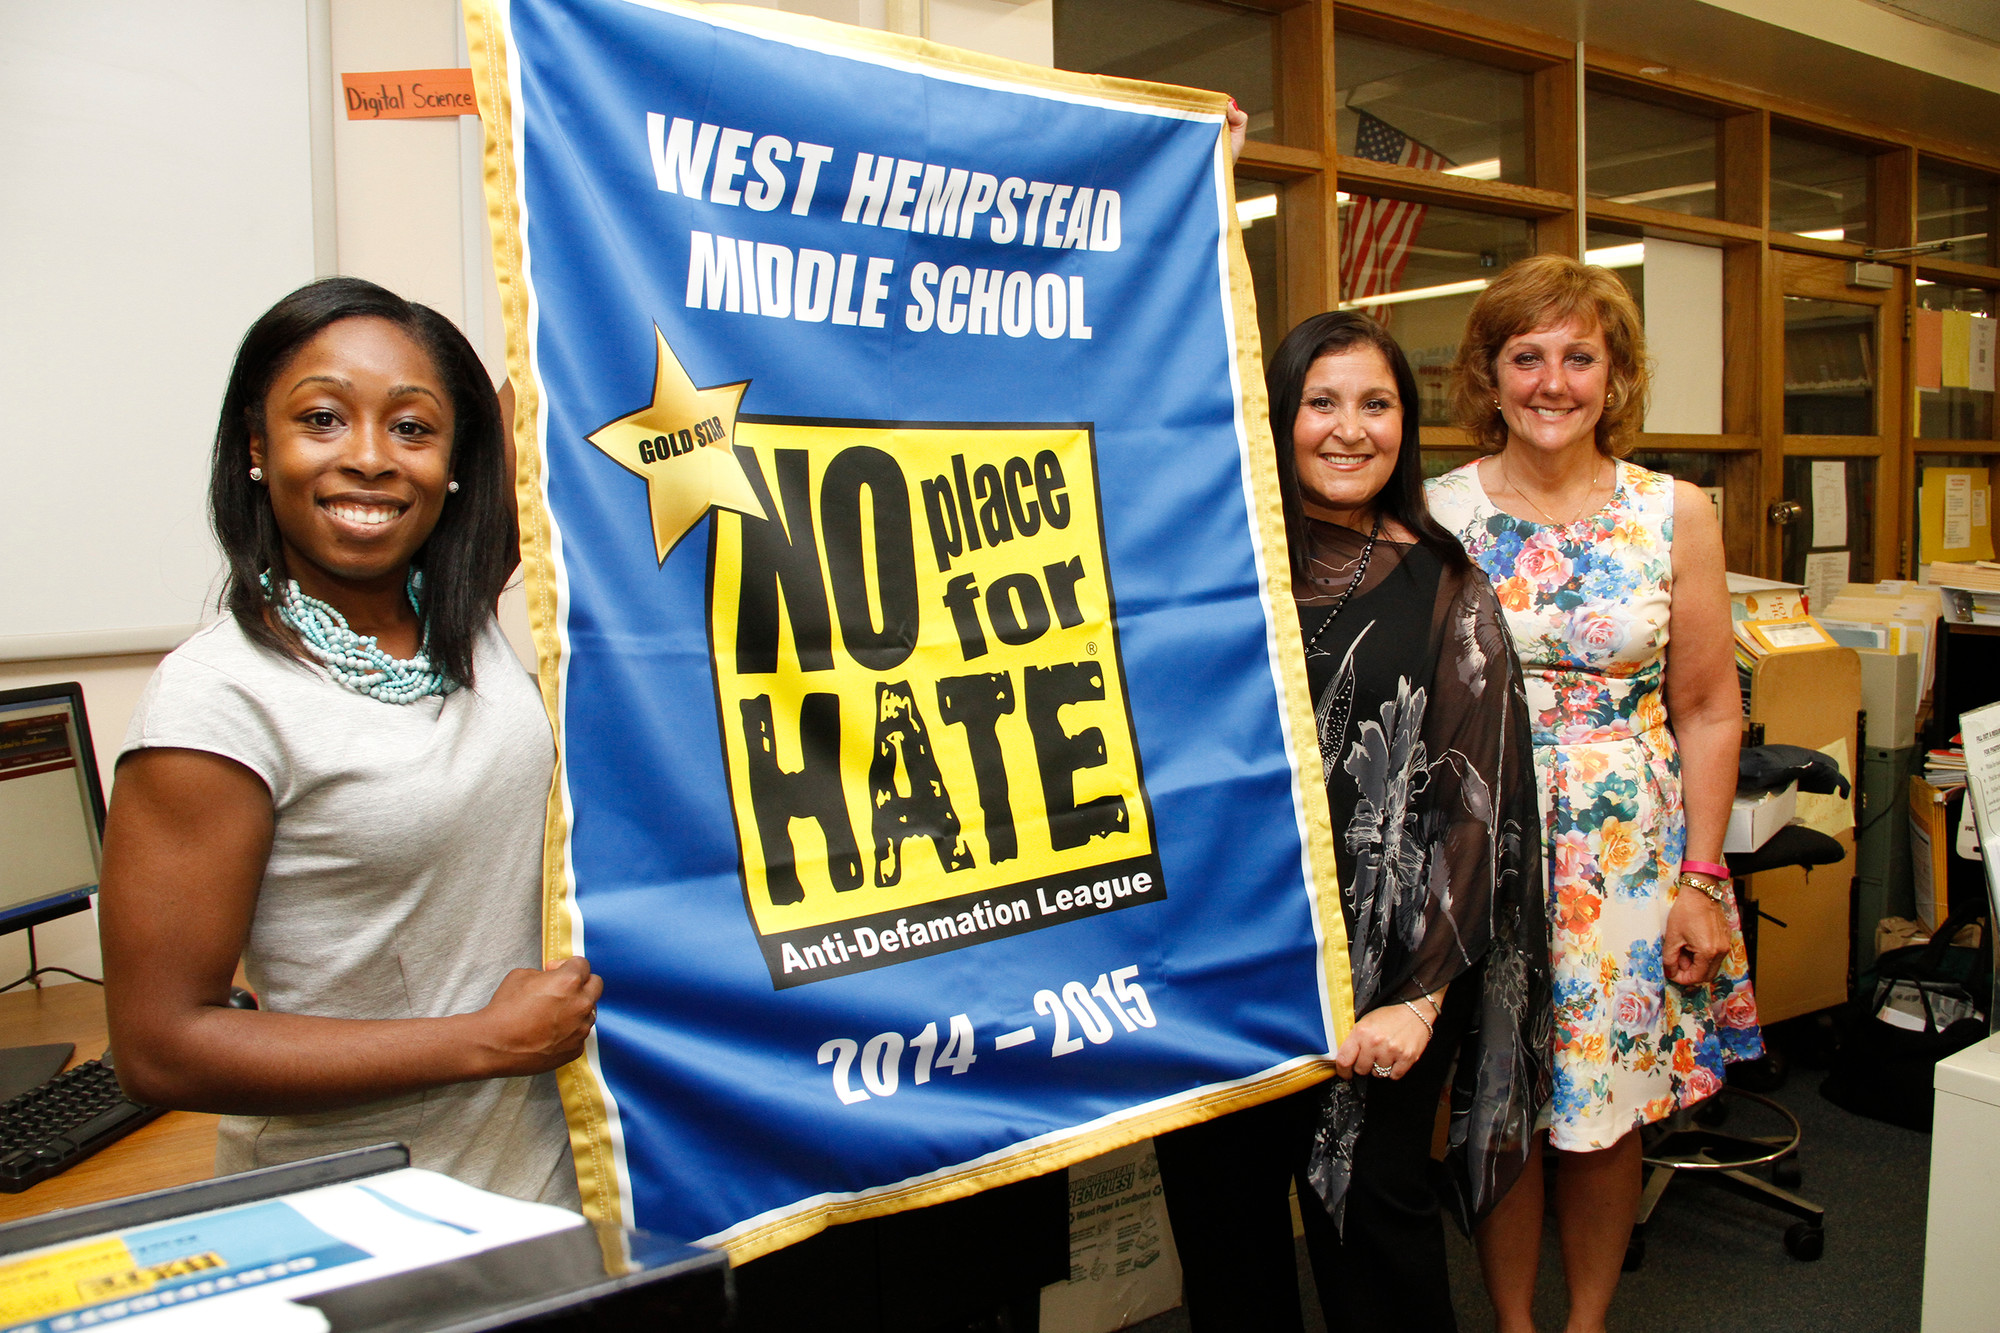 Amanda Holder, Cari Lubliner and Principal Teresa Grossane with West Hempstead Middle School's newly-aquired No Place for Hate banner from the Anti-Defamation League.